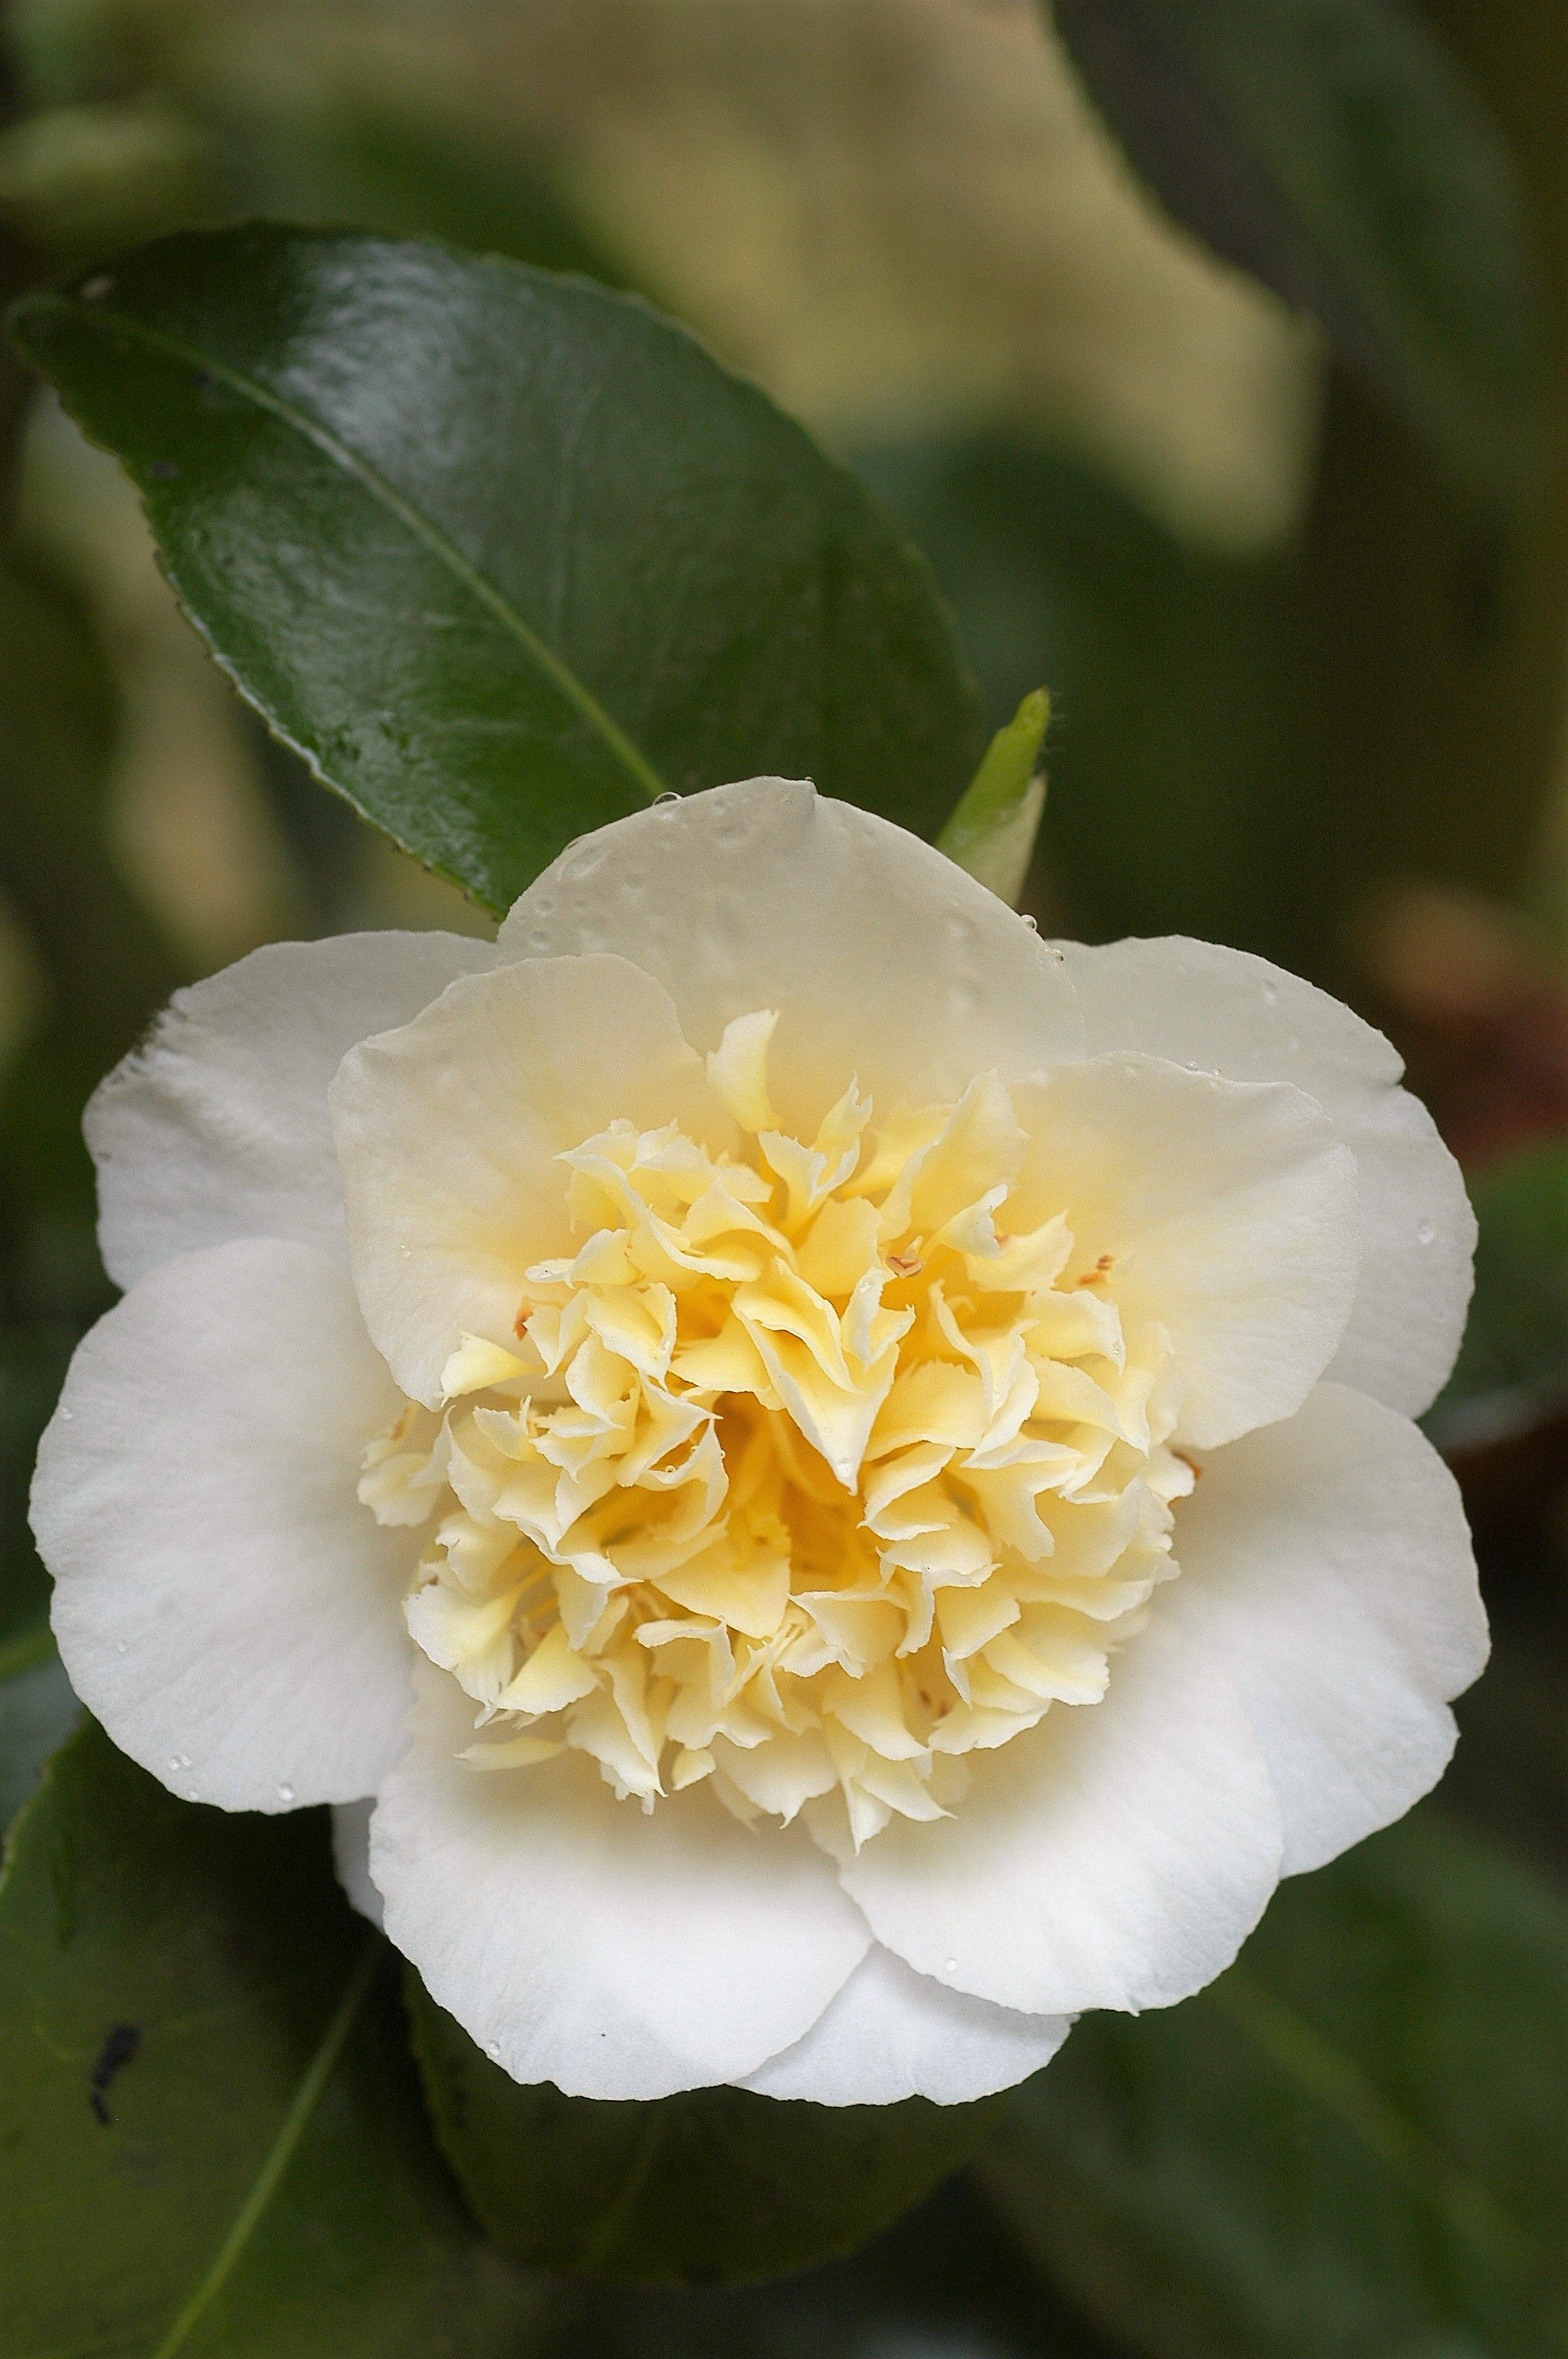 Camelia_Brushfields_yellow_0406